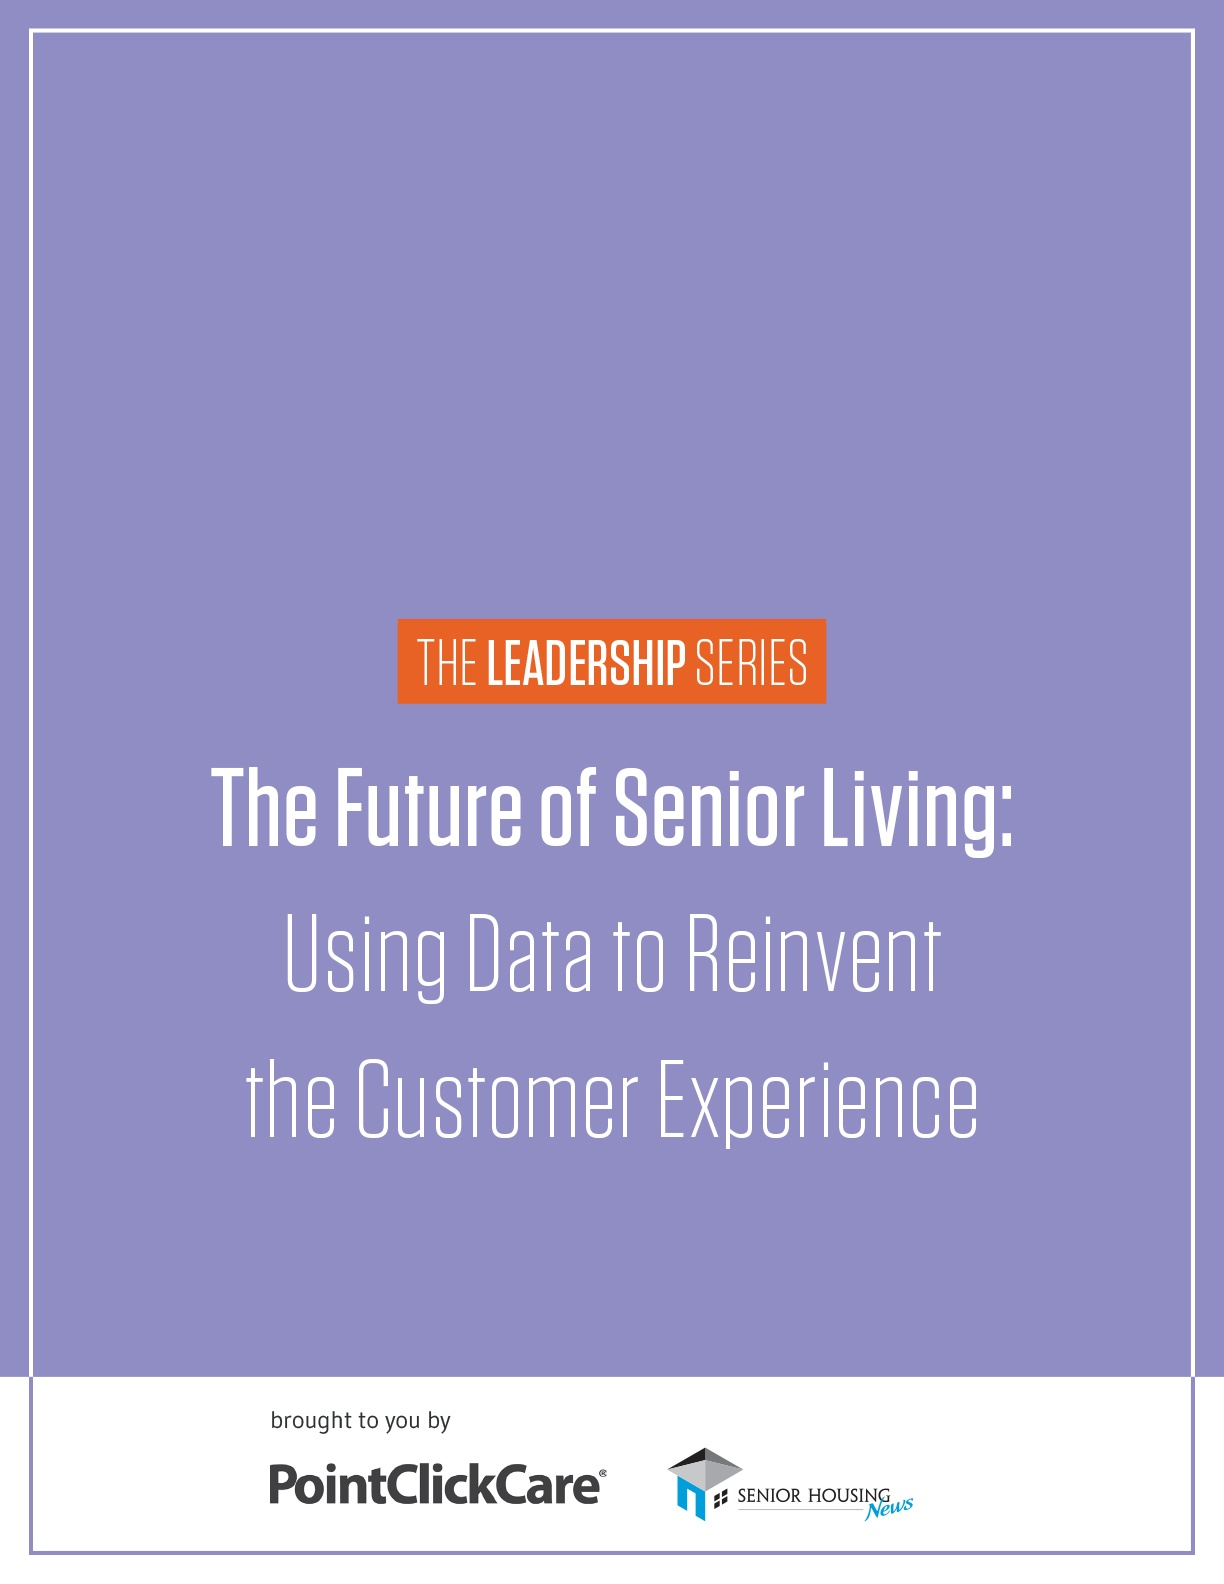 The Future of Senior Living: Using Data to Reinvent the Customer Experience